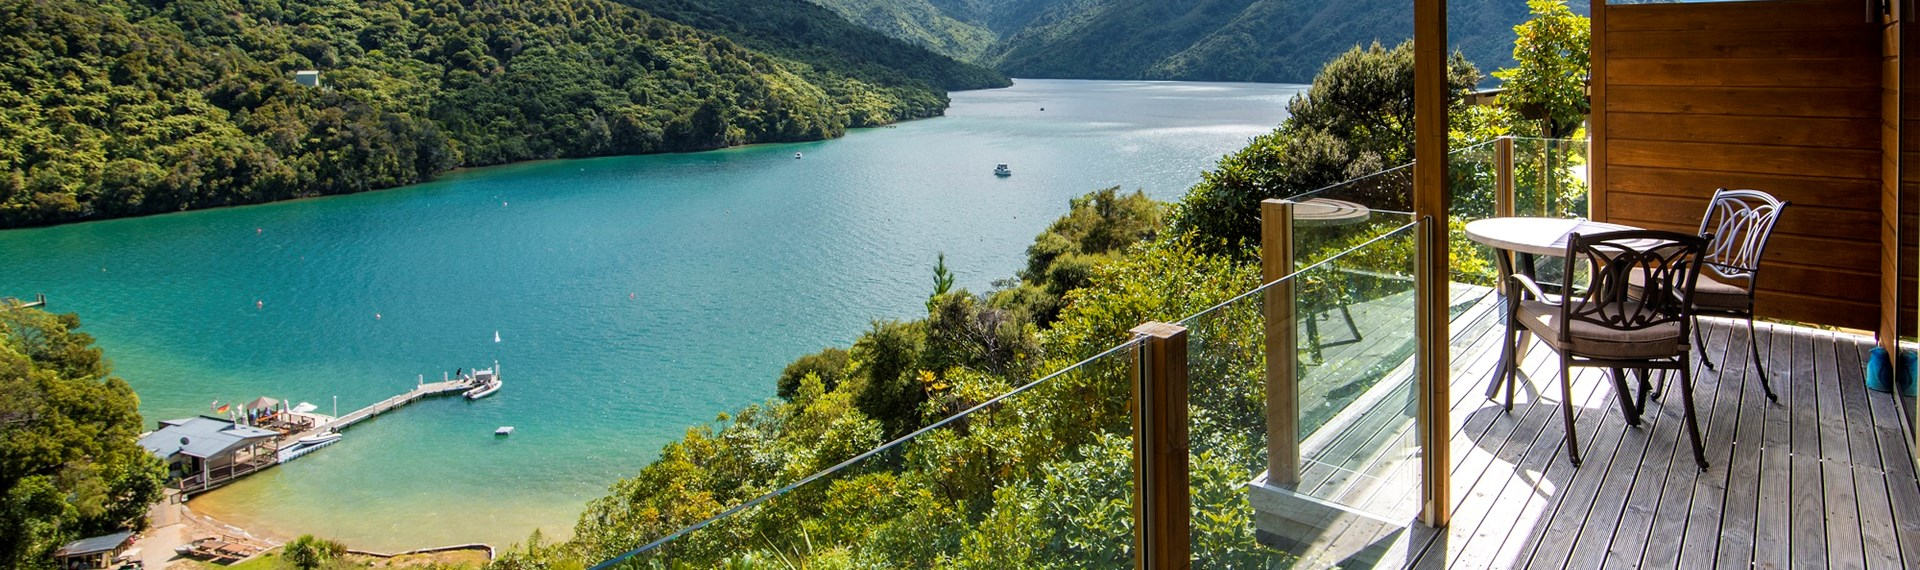 Some accommodation rooms include a private balcony with surrounding views of Punga Cove and Endeavour Inlet in the Marlborough Sounds in New Zealand's top of the South Island